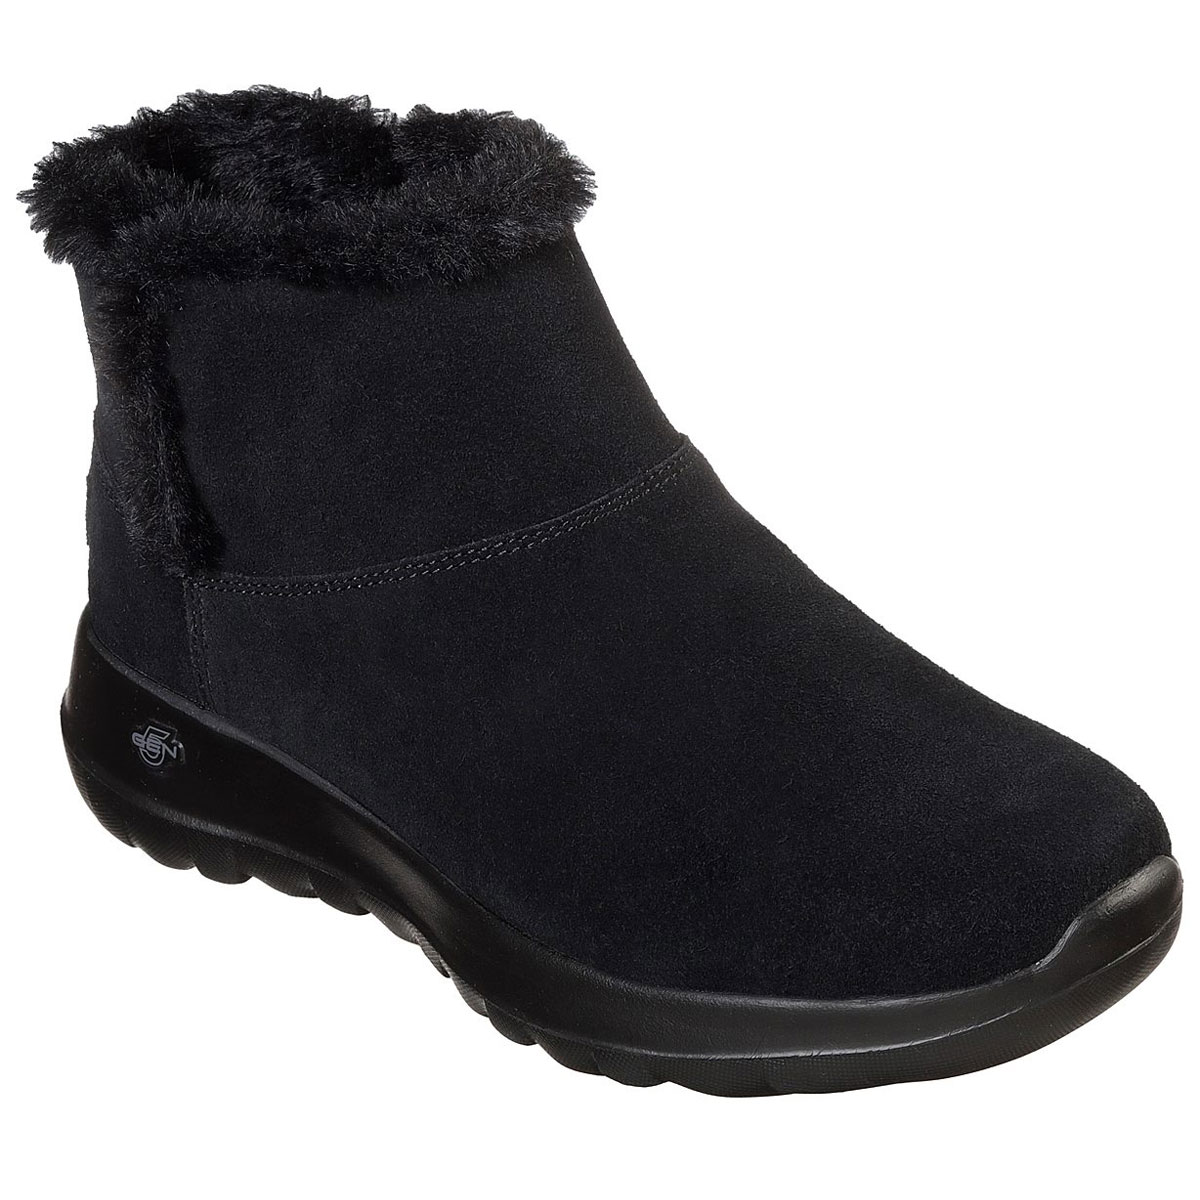 Skechers Women's On The Go Joy - Bundle Up Boots - Black, 6.5